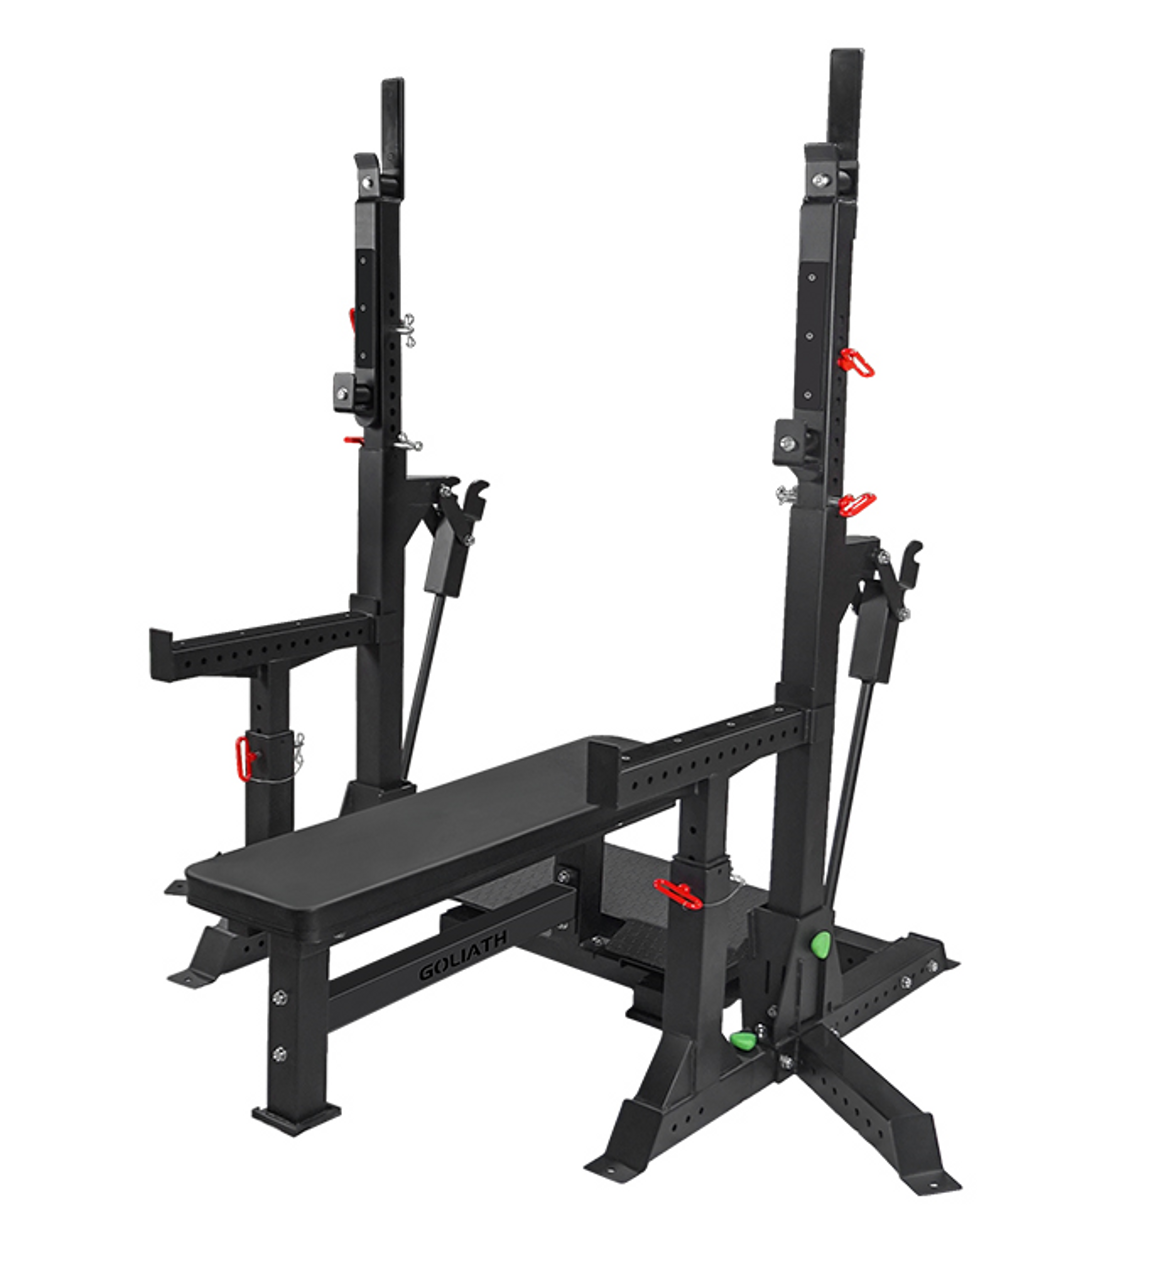 GOLIATH Ruggedised Competition Combo Rack. Squat and Bench heavy! (GOLIATH Ruggedised Combo Squat Bench)